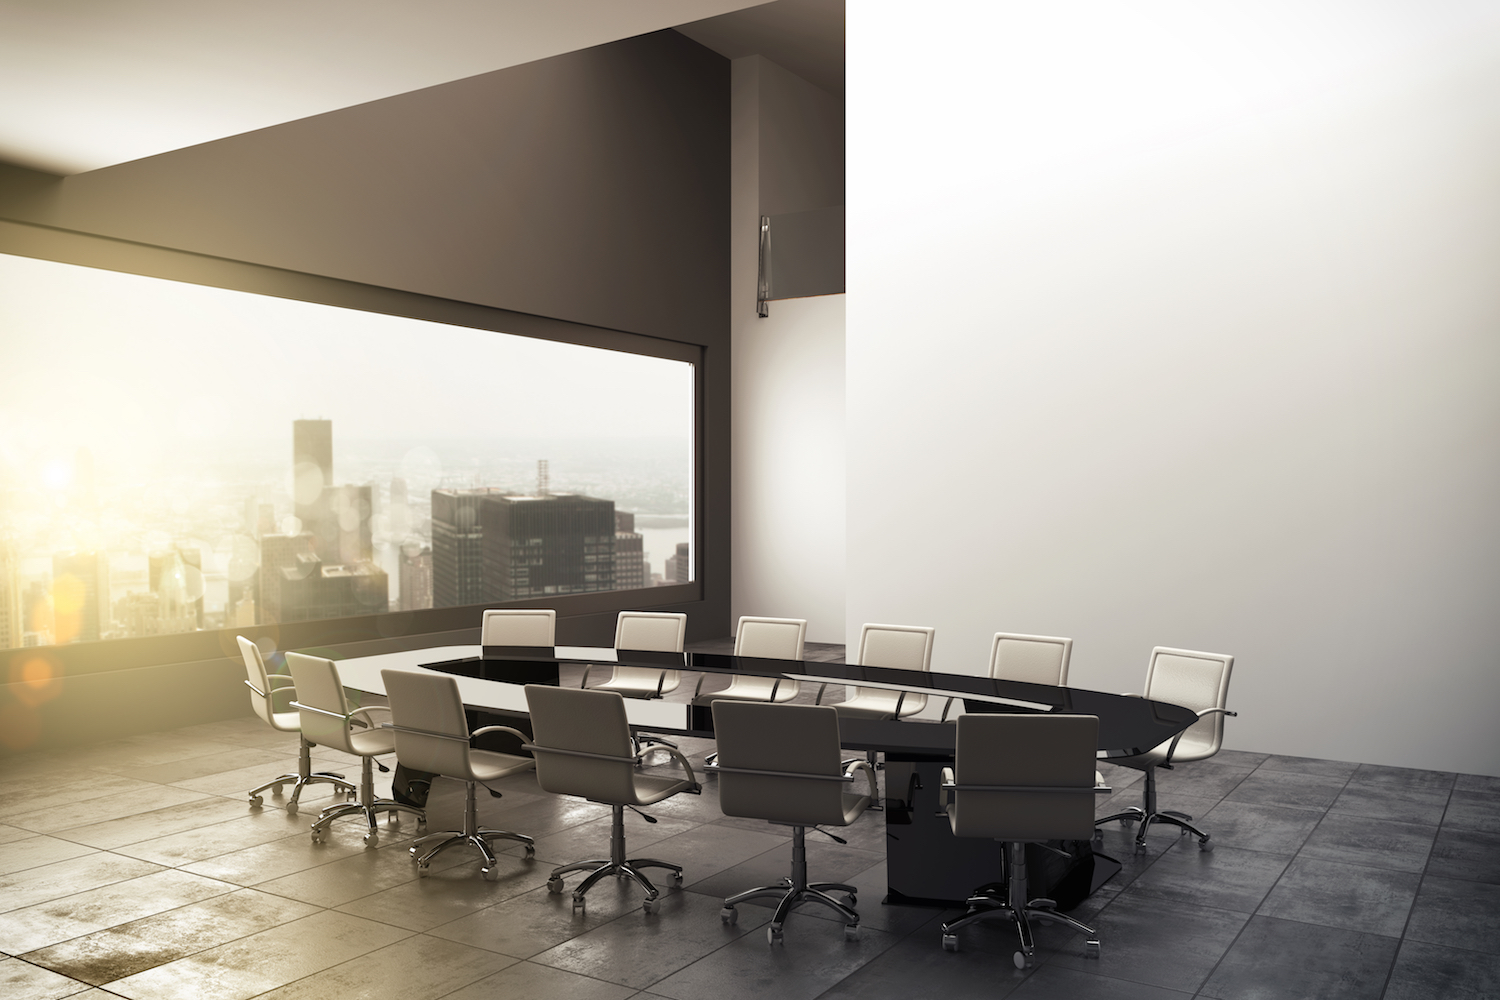 Conference Room Design A Guide For The Perplexed